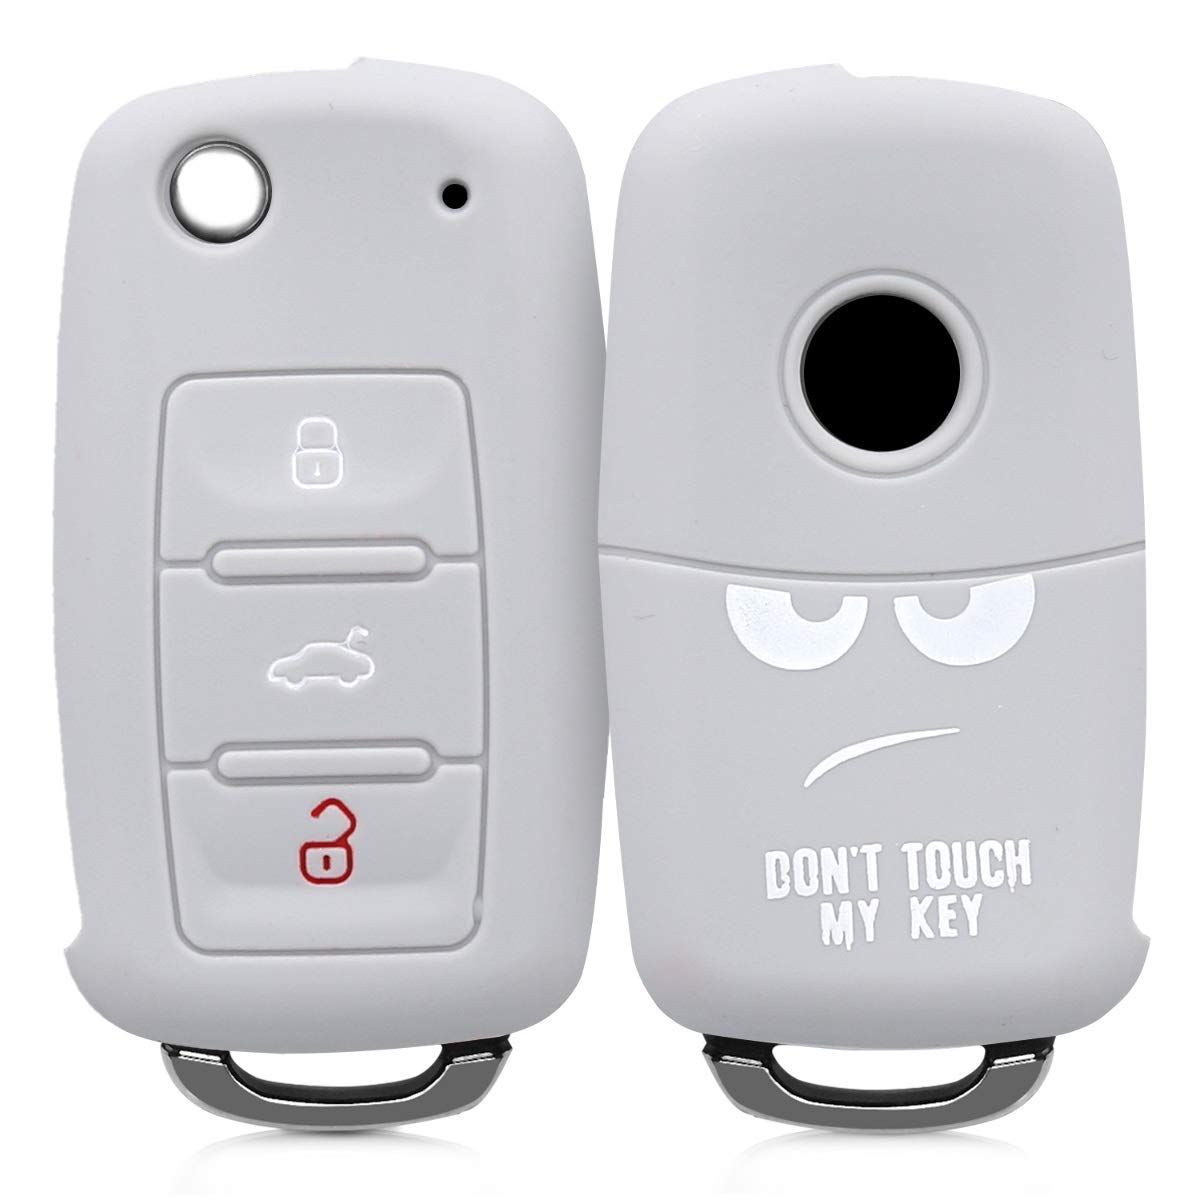 Silicone Protective Key Fob Cover for Honda 3+1 Button Car Key kwmobile Car Key Cover for Honda Blue